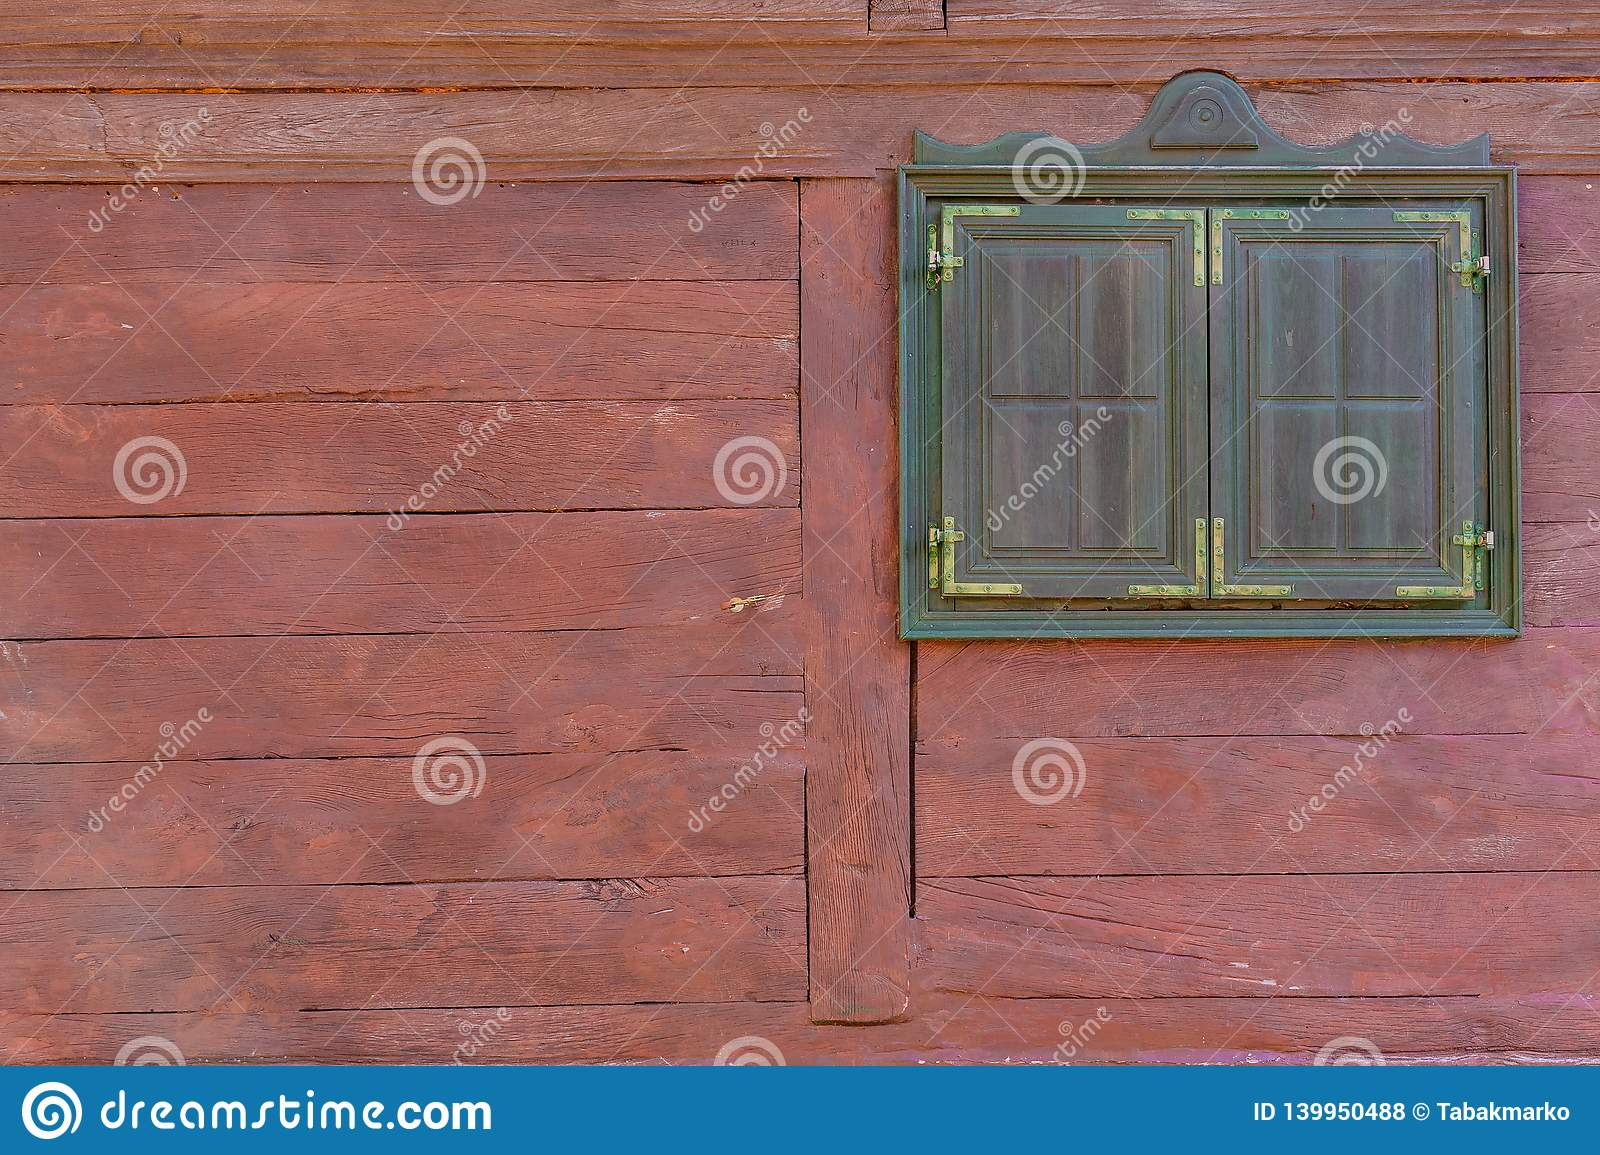 A brown window on a red wooden cabin wall